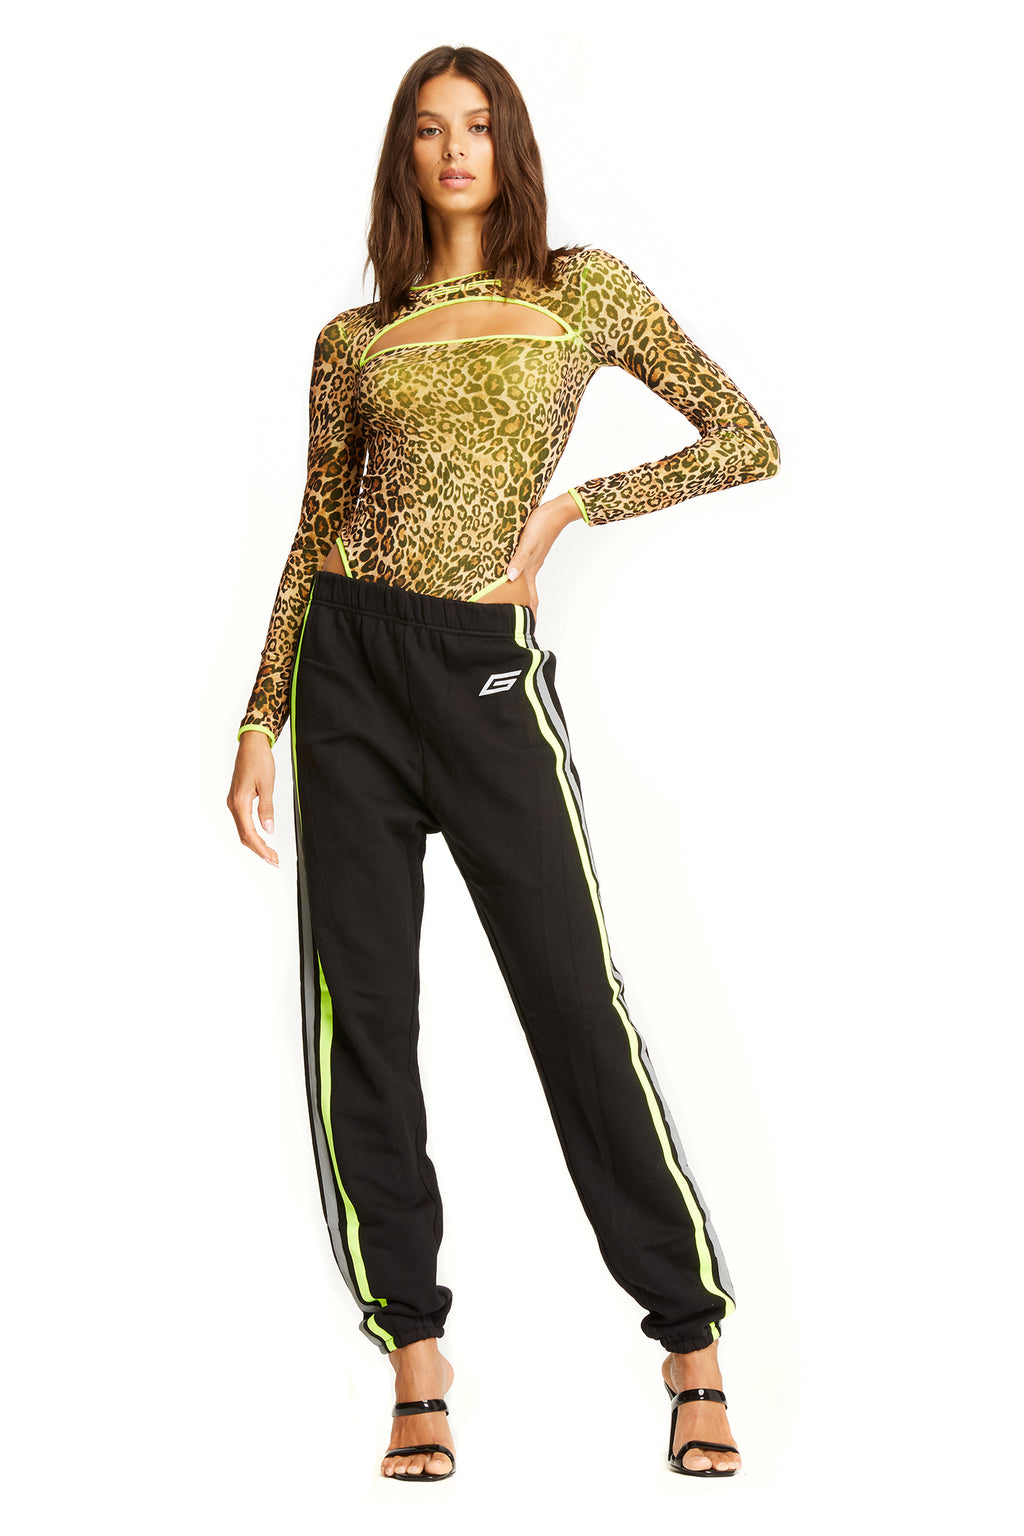 MERCURY PANT - NEON/BLACK